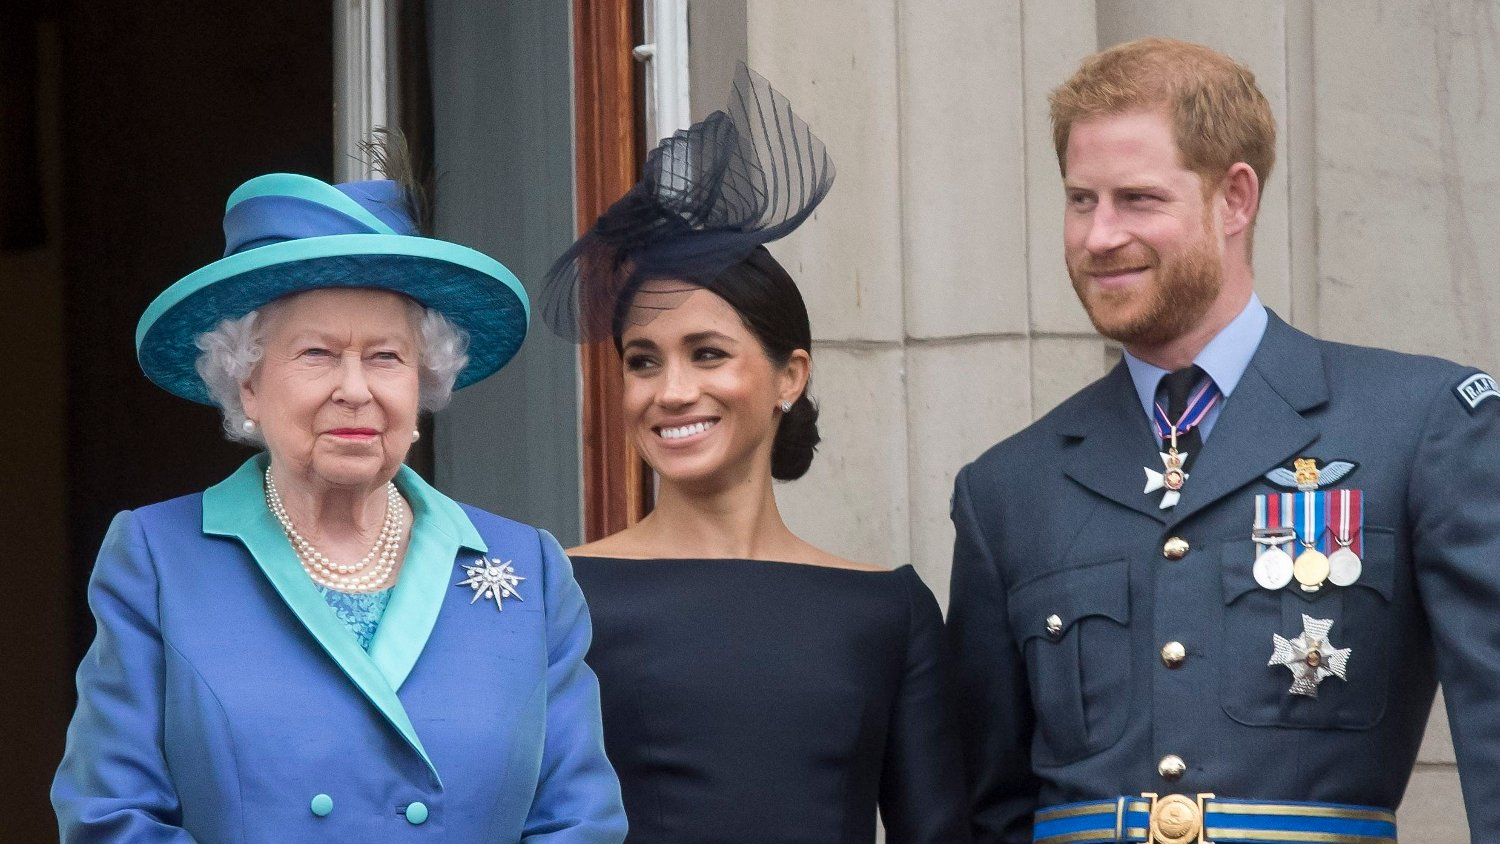 RAF centenary Countess of Wessex, Prince of Wales, the Duchess of Cornwall, Queen Elizabeth II, Duchess of Sussex, Duke of Sussex, Duke of Cambridge, and the Duchess of Cambridge on the balcony at Buckingham, Palace where they watched a Royal Air Force flypast over central London to mark the centenary of the Royal Air Force..